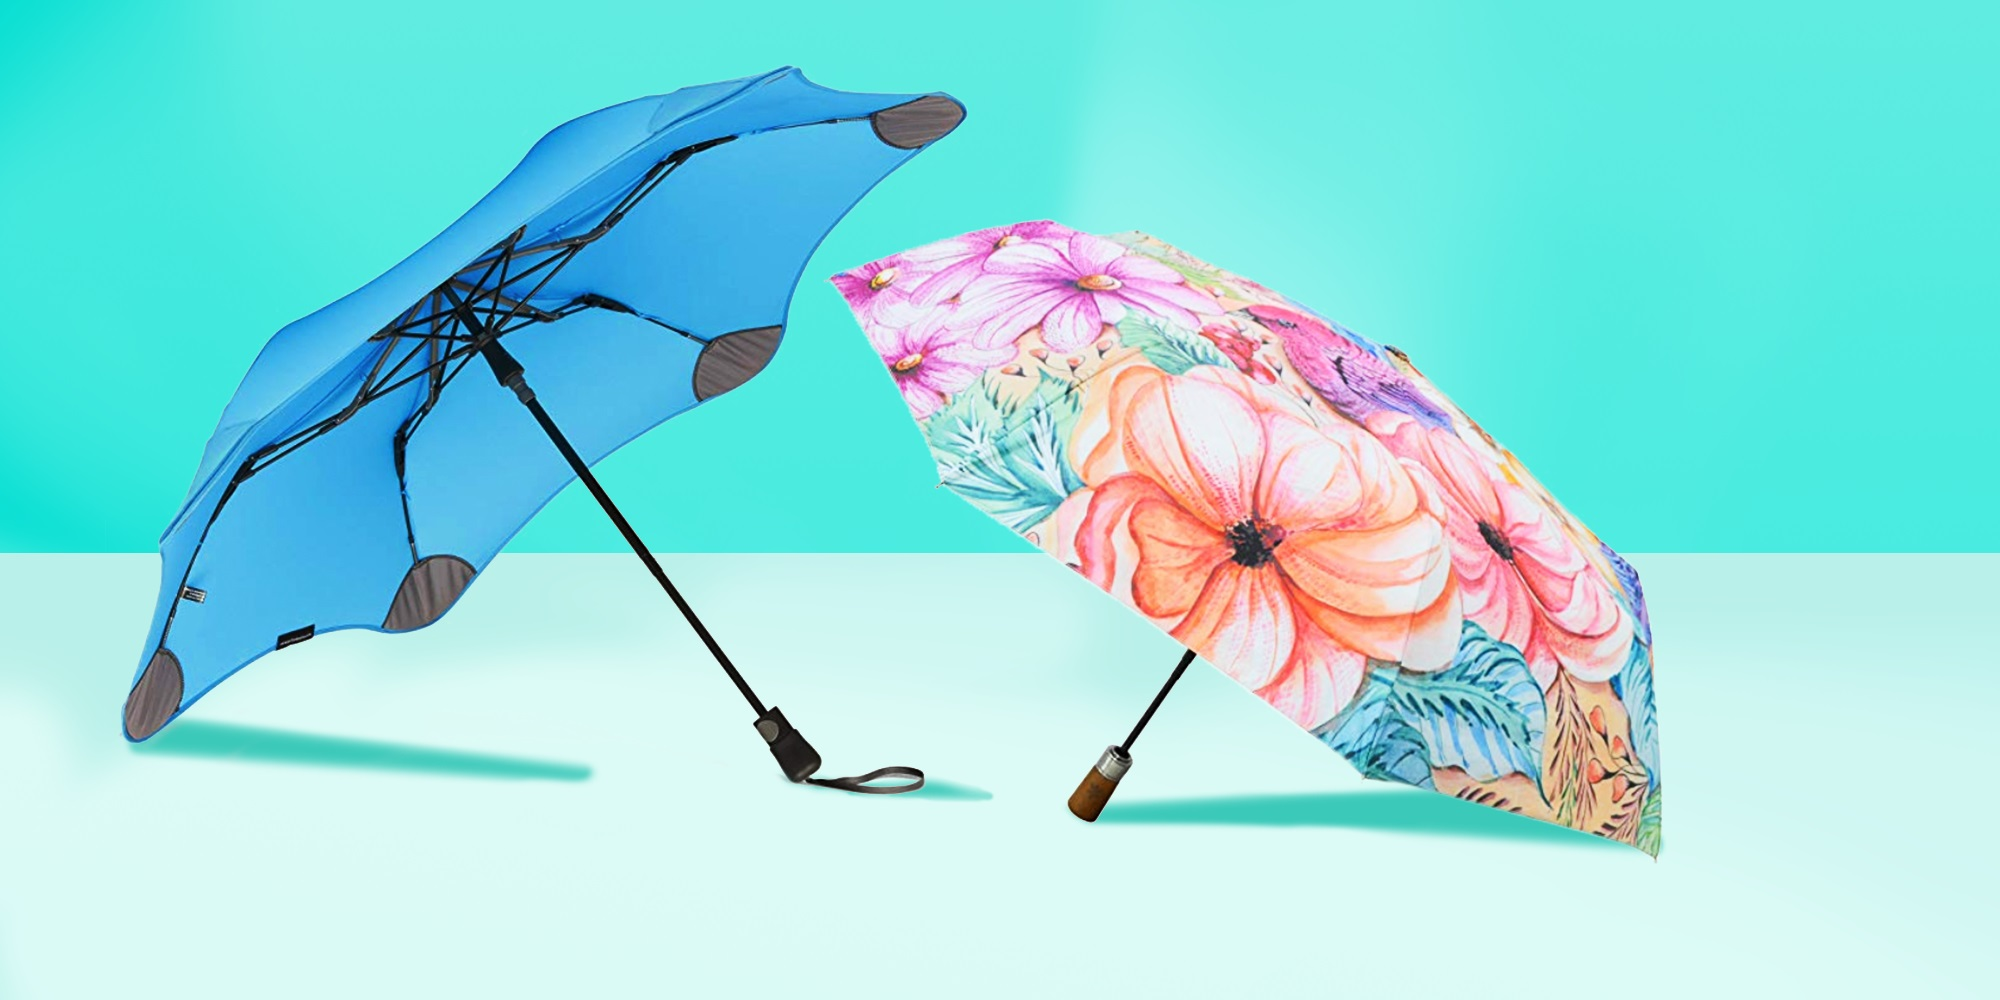 Tips On How To Choose The Best Travel Umbrella